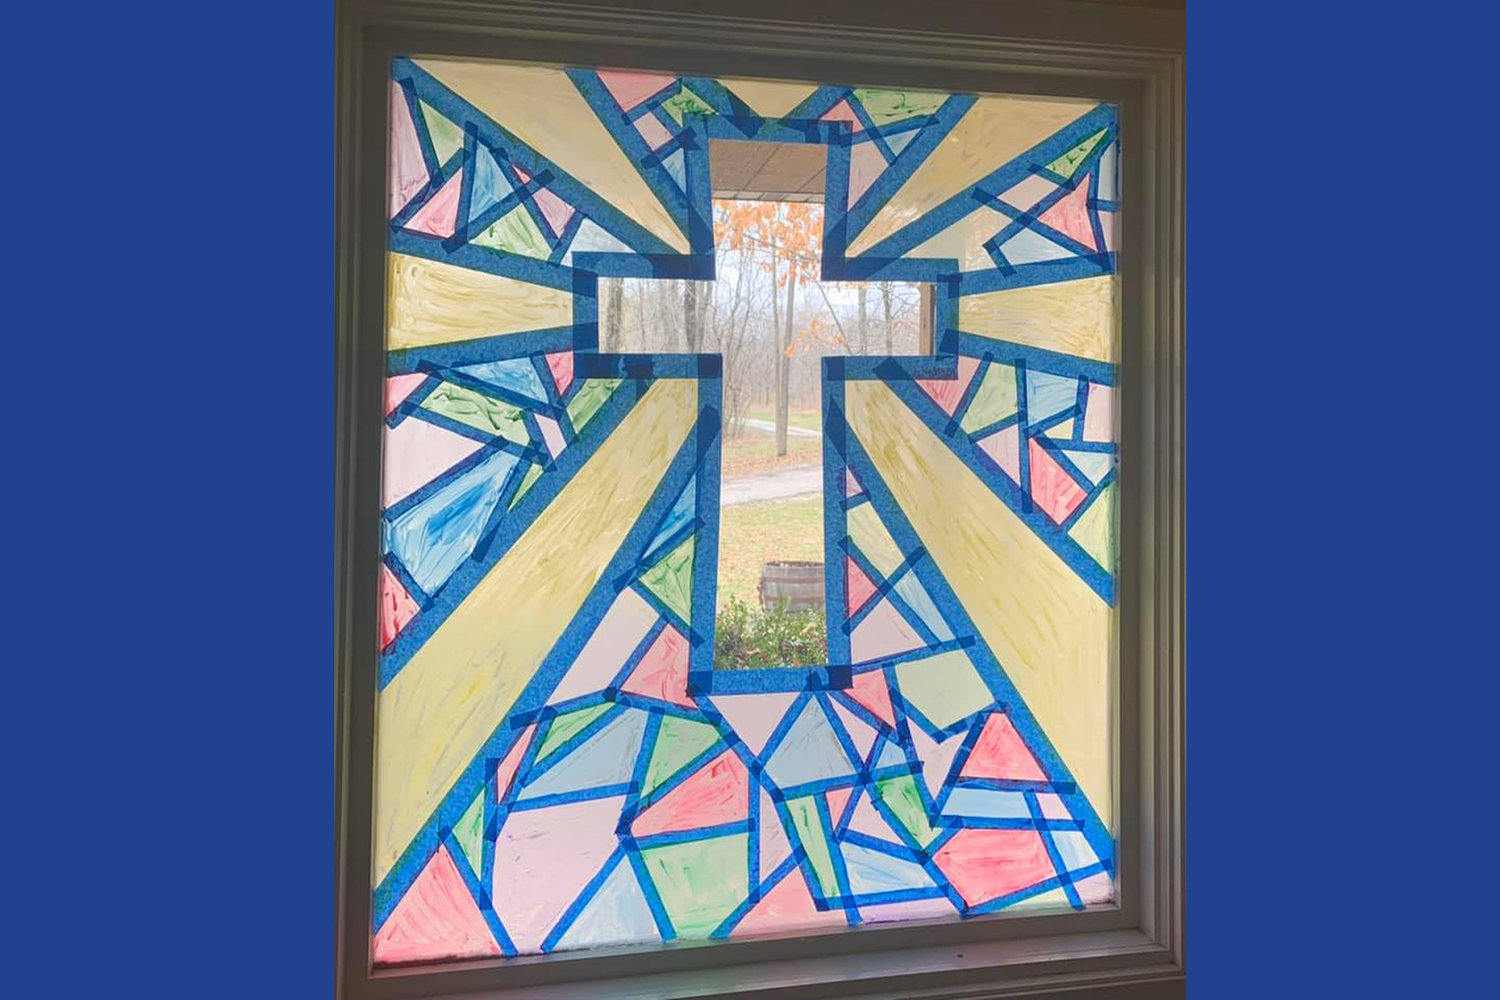 This is how the completed window looks. Lacey Timbrook found the idea for this children's project online.